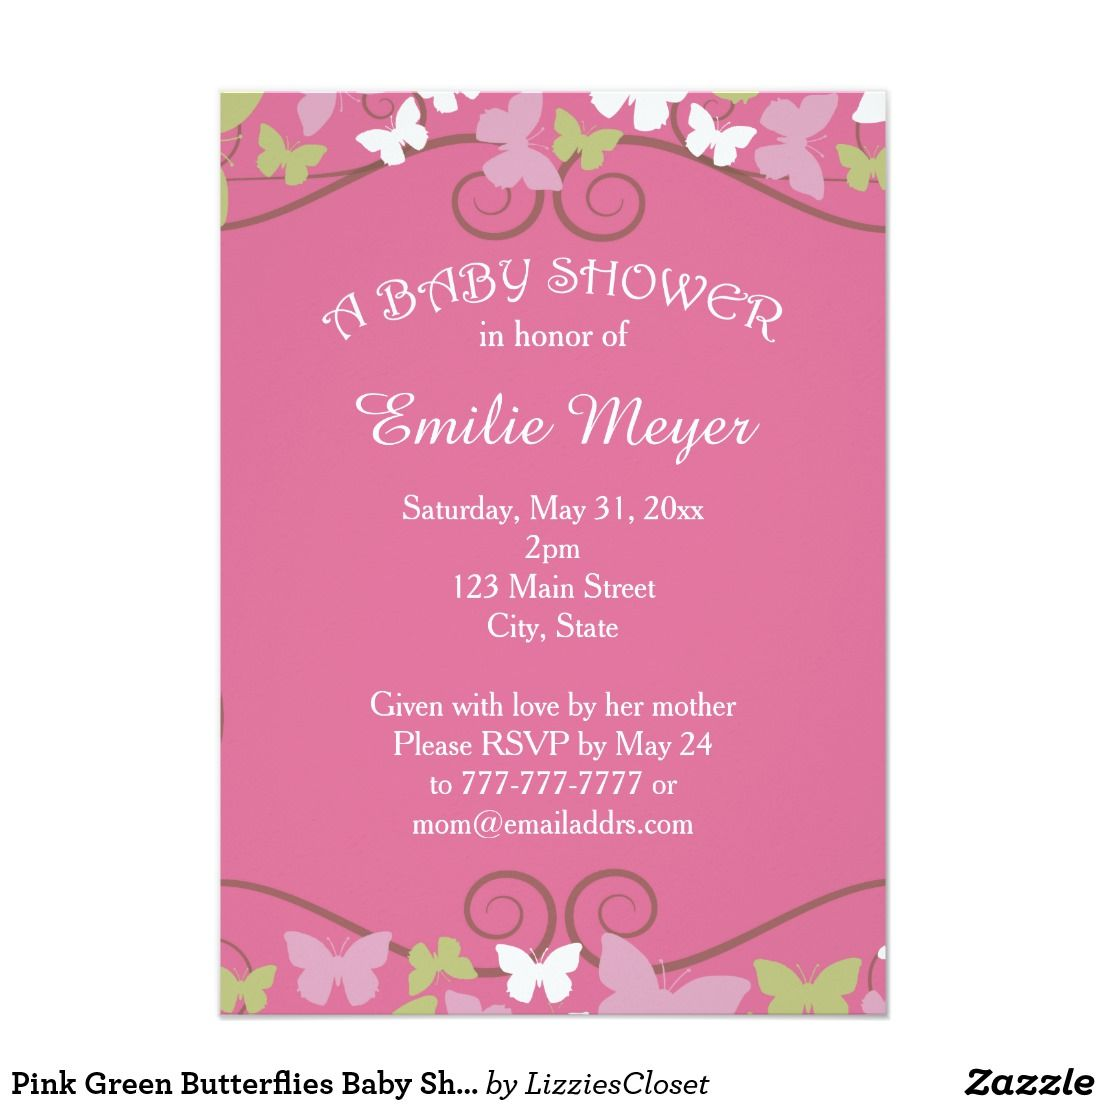 Pink Green Butterflies Baby Shower Invitation | Butterfly baby ...